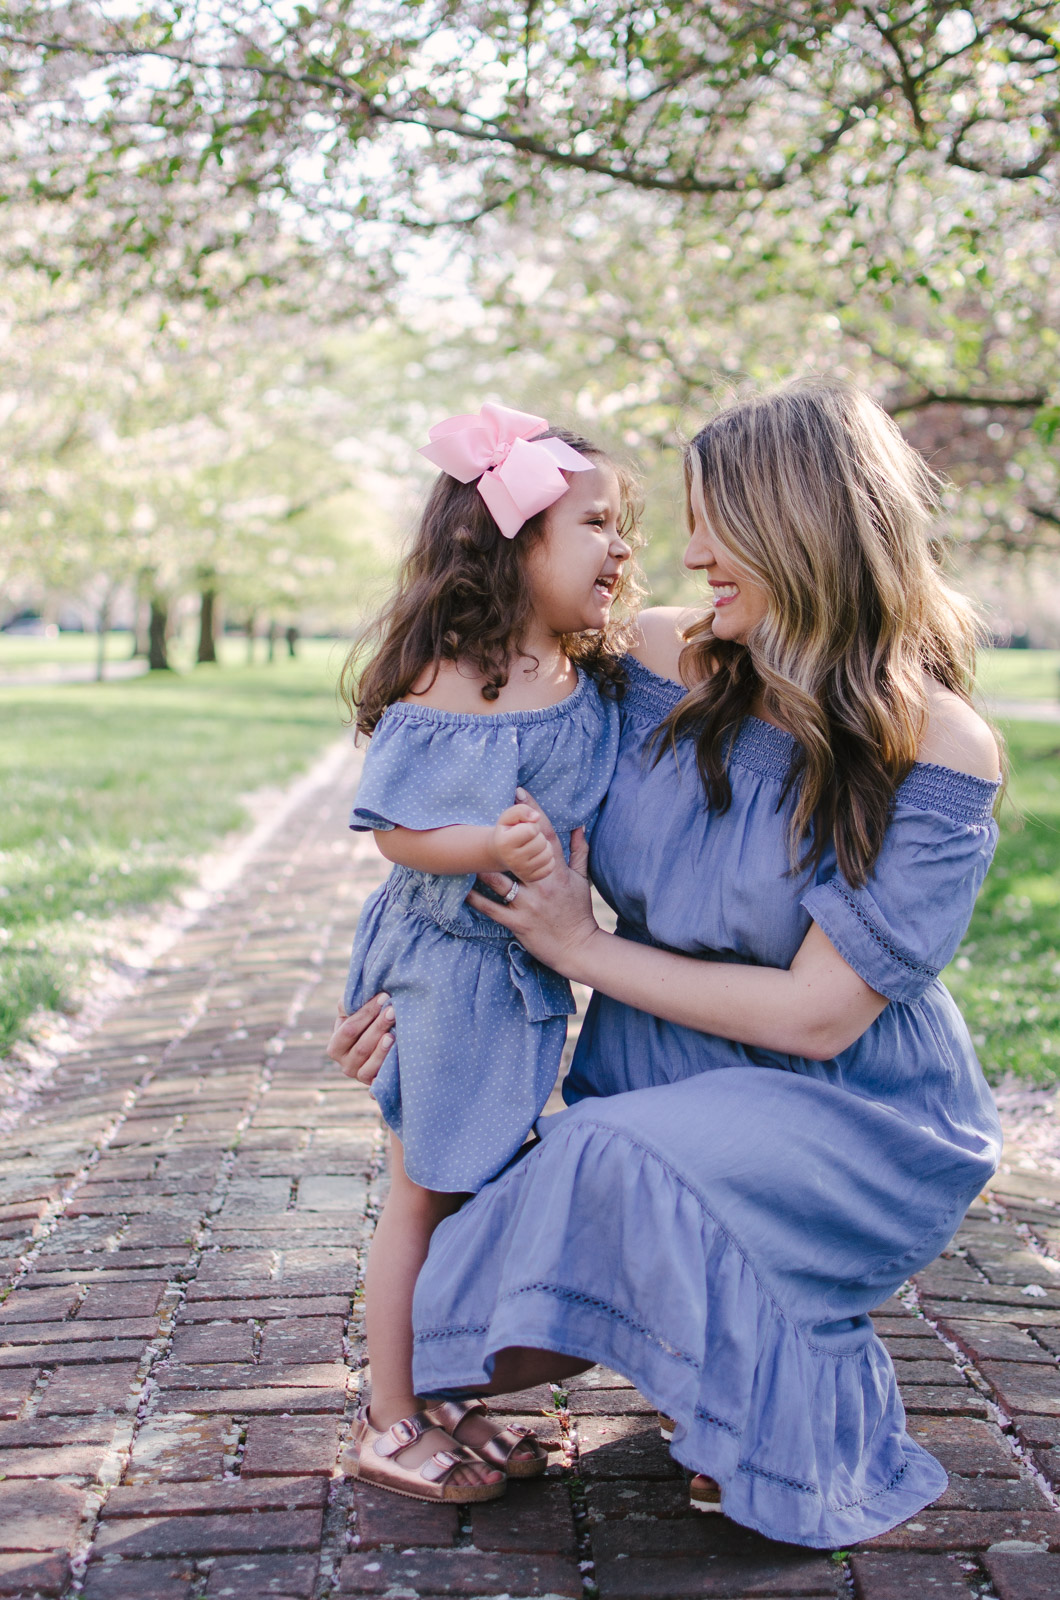 mommy and me spring outfits - mother daughter matching chambray dresses | For more mommy and me outfits, see bylaurenm.com!